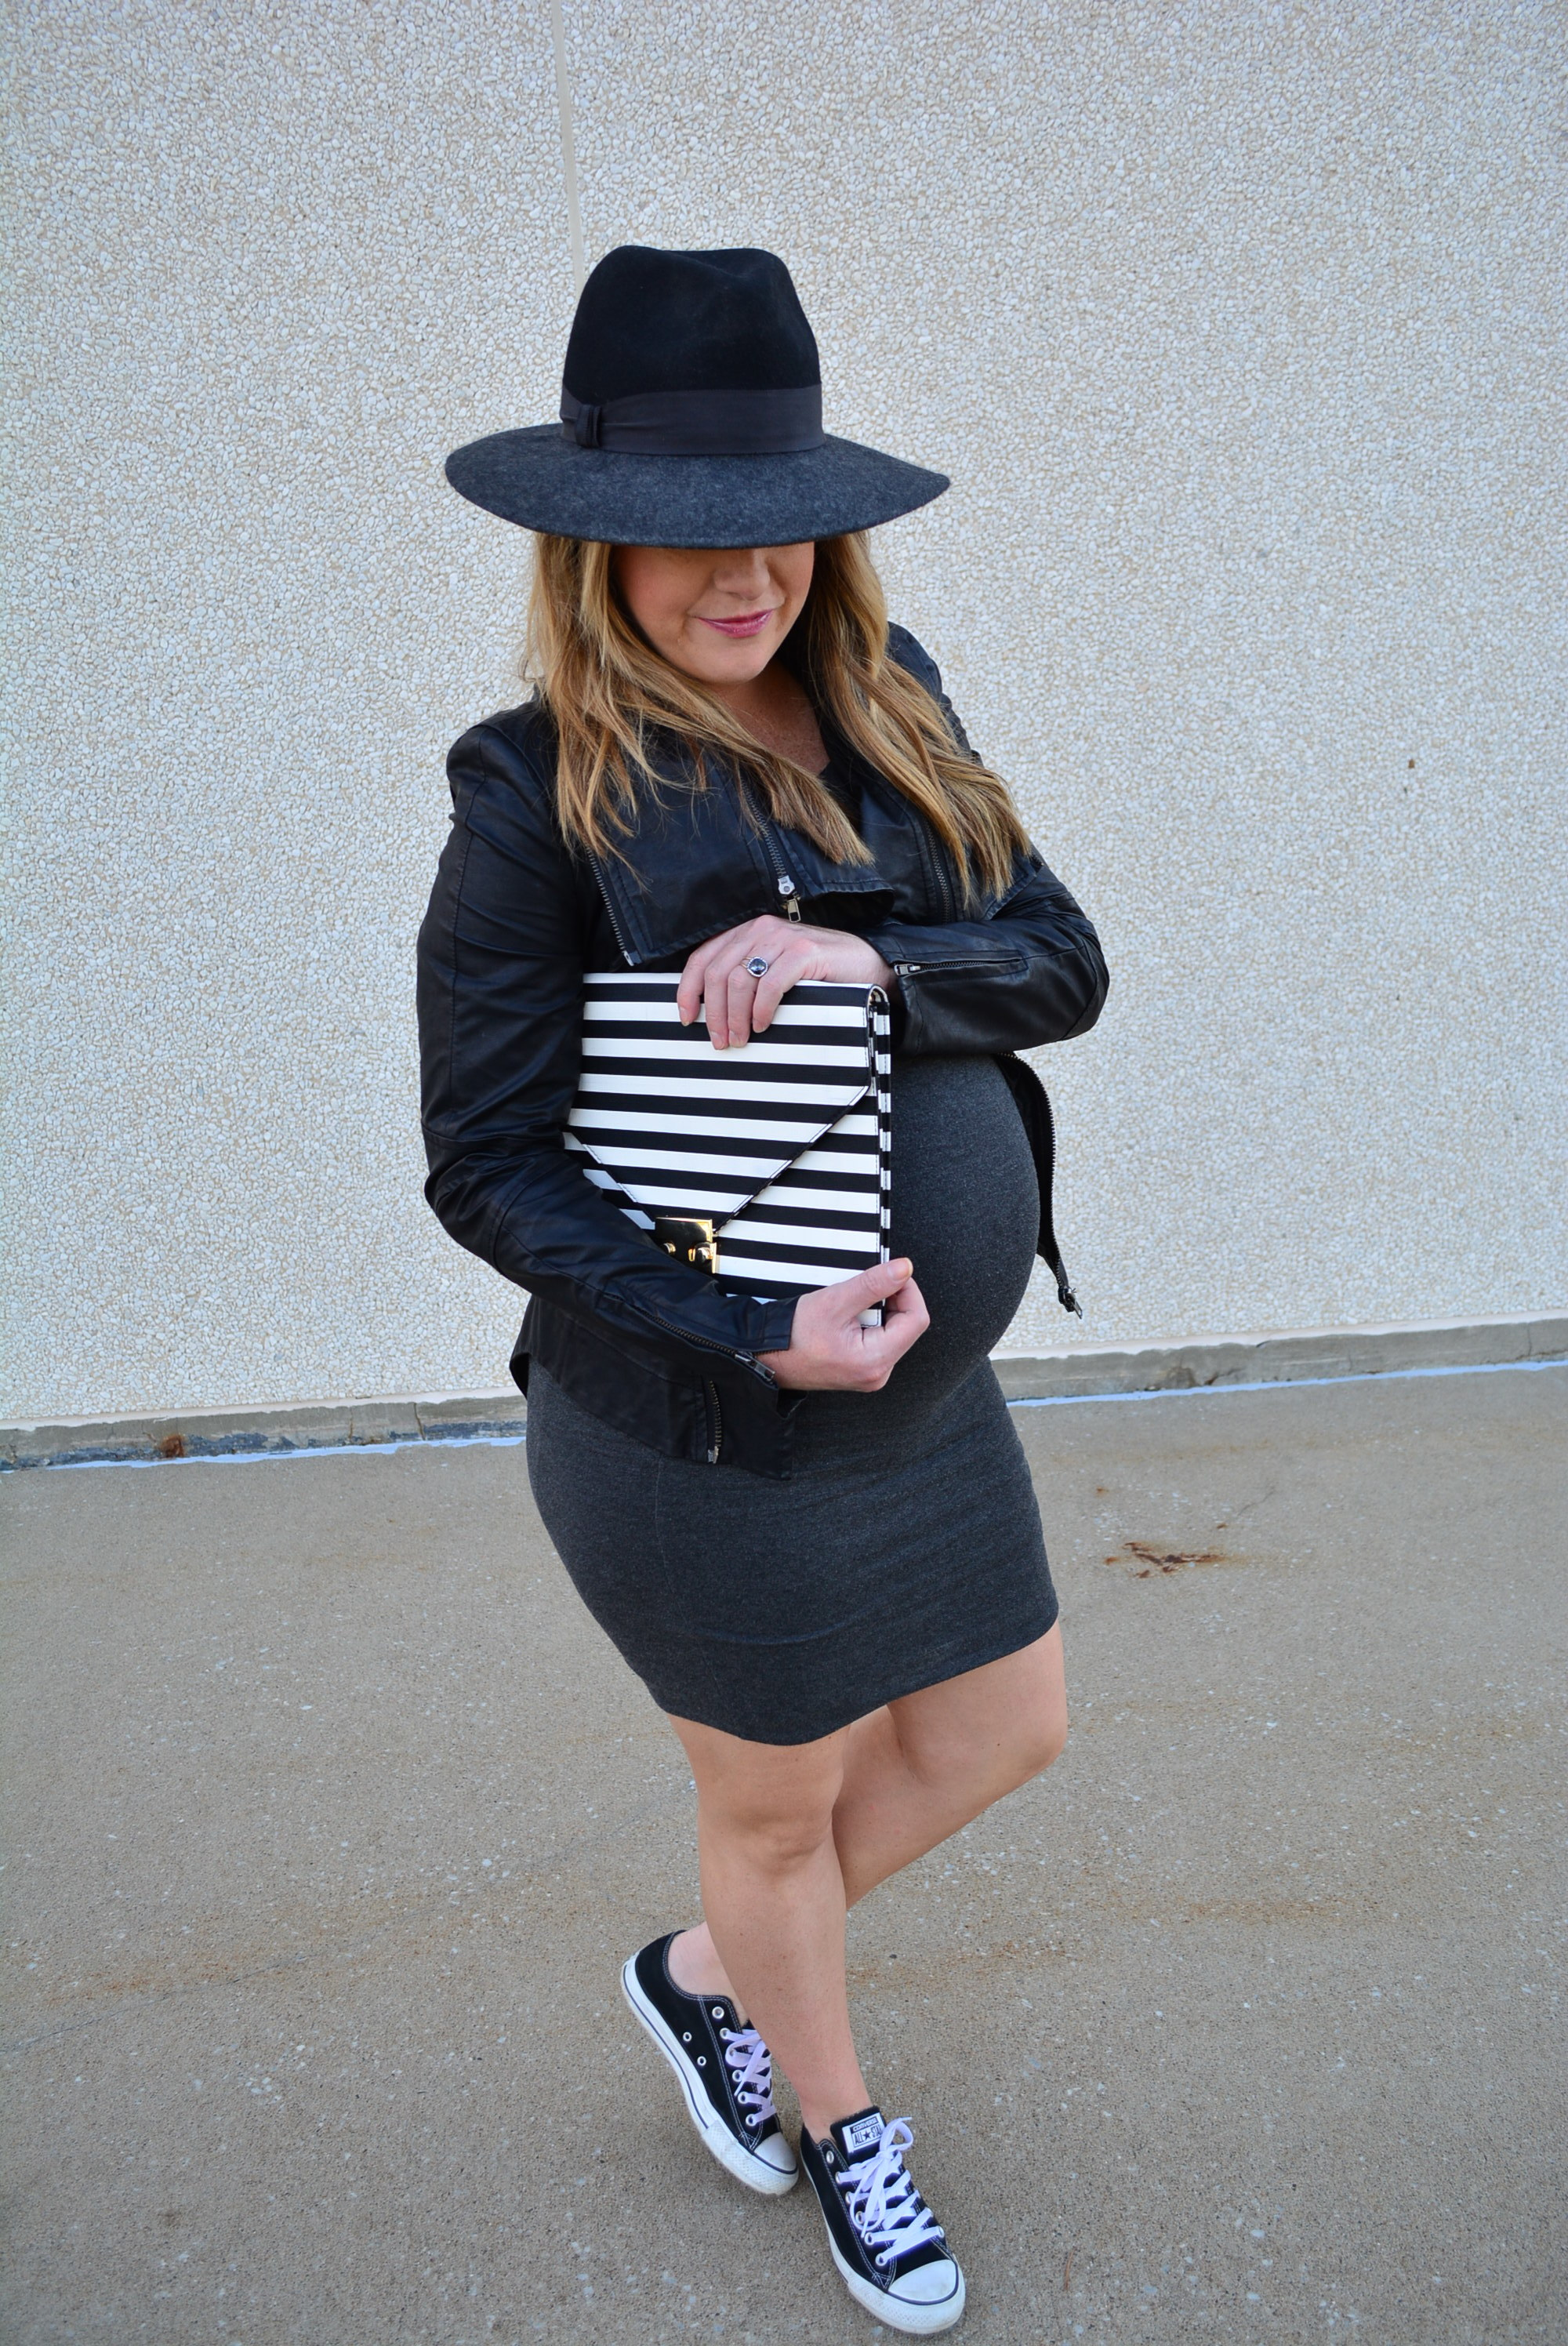 Chic maternity fall outfit